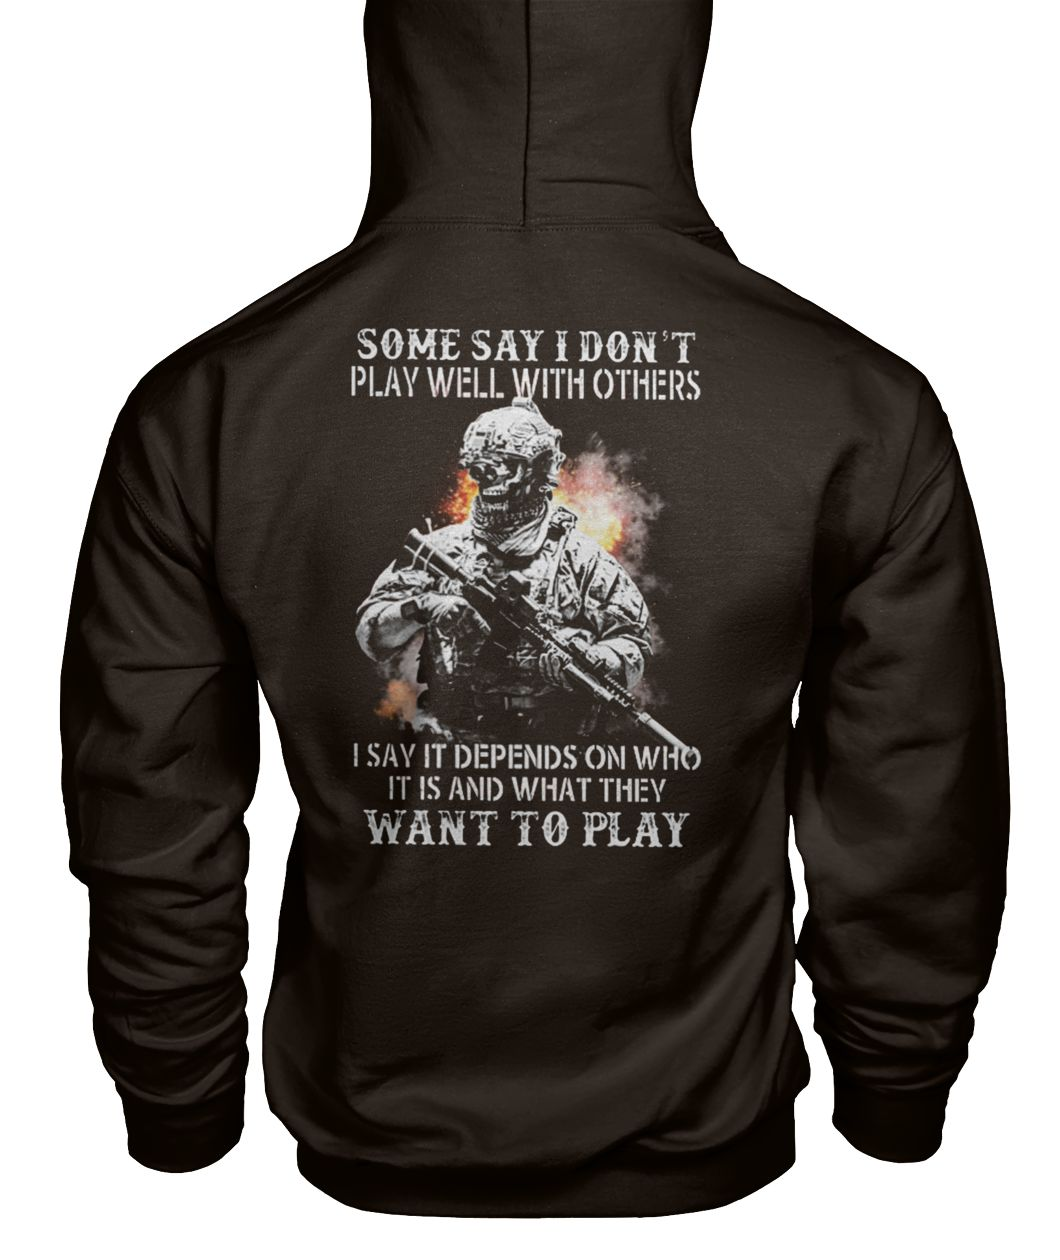 Some say I don't play well with others american soldier gildan hoodie